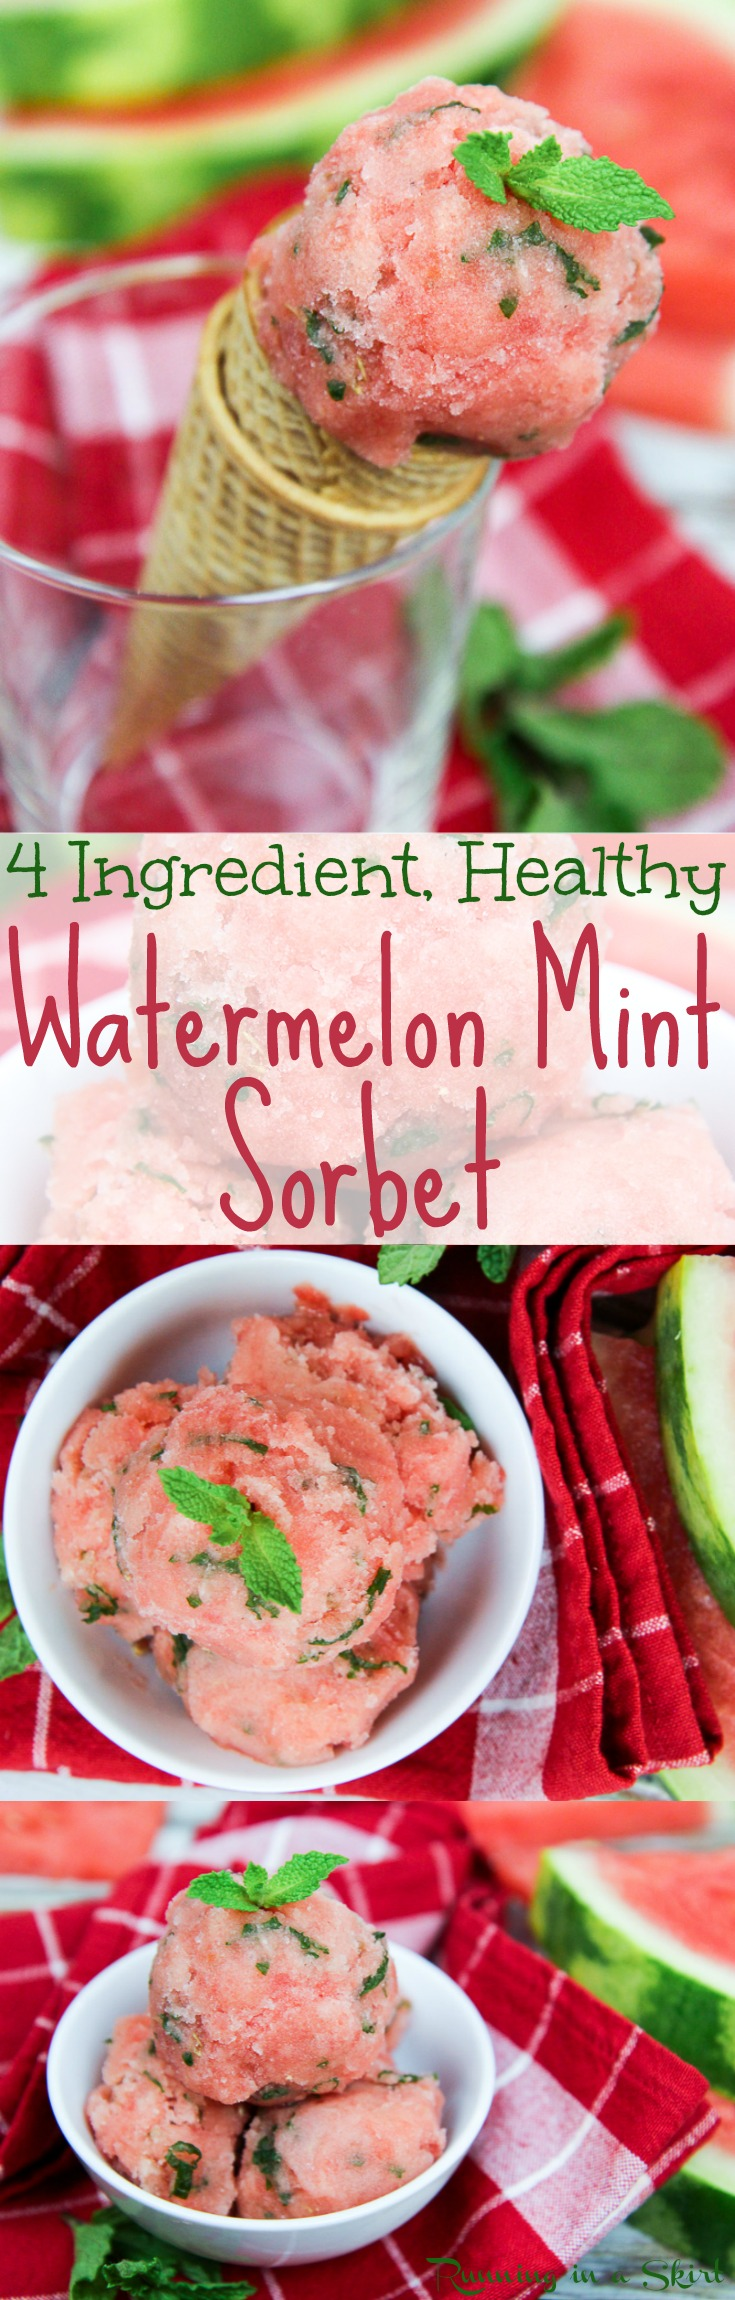 4 Ingredient Vegan Watermelon Nice Cream recipe with mint!  A healthy, homemade and easy no churn, no ice cream maker watermelon sorbet.   Added sugar free using frozen fruit.  The perfect summer dessert or treats/ Running in a Skirt via @juliewunder